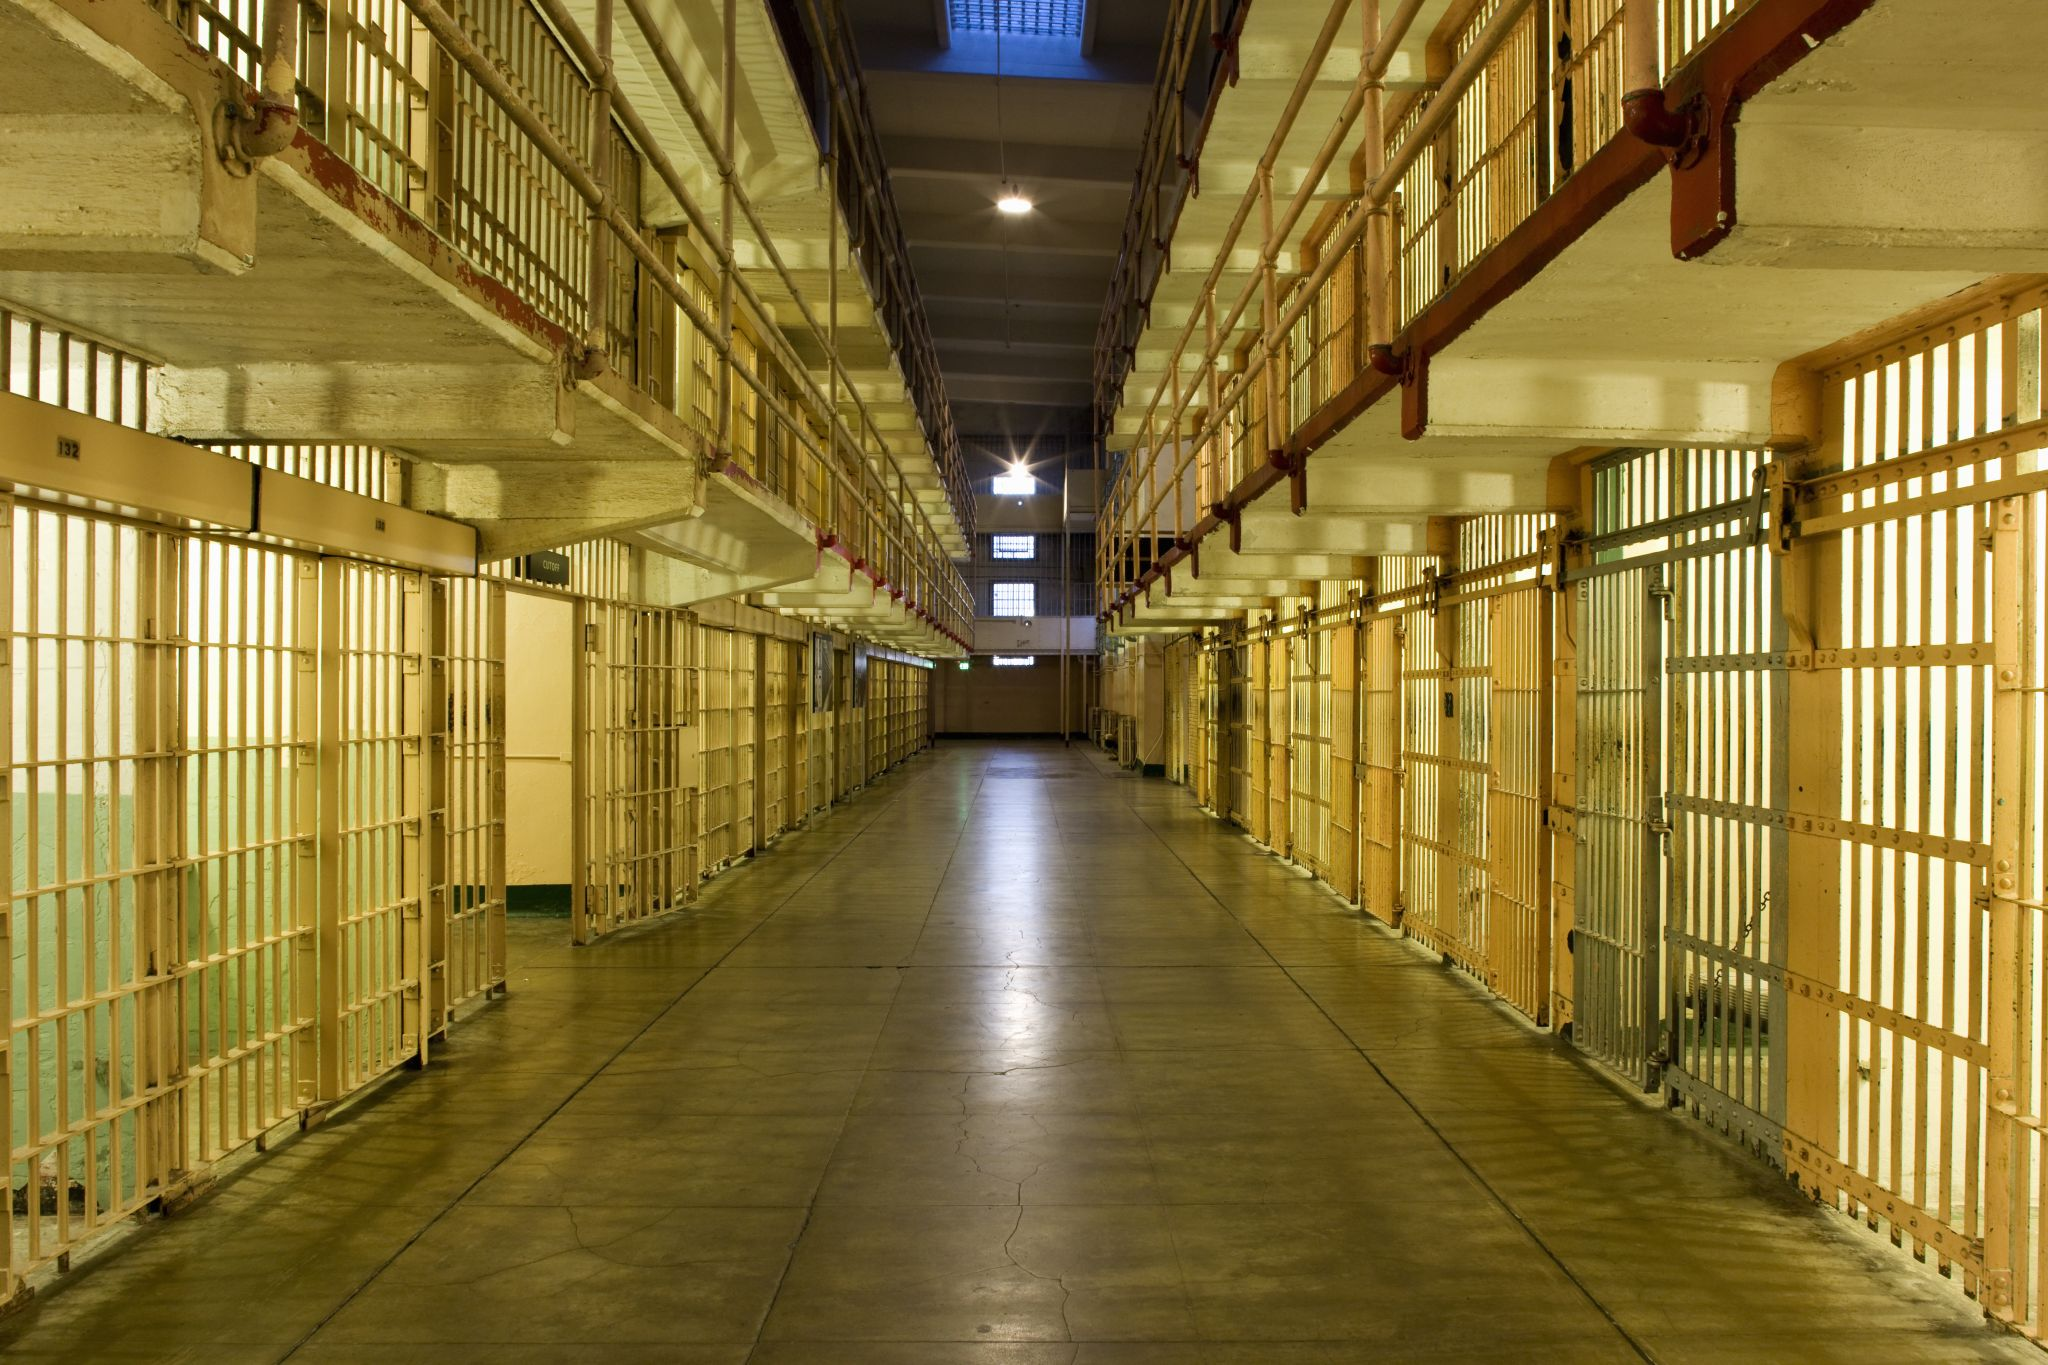 Get a look at the most notorious prisons in American ...